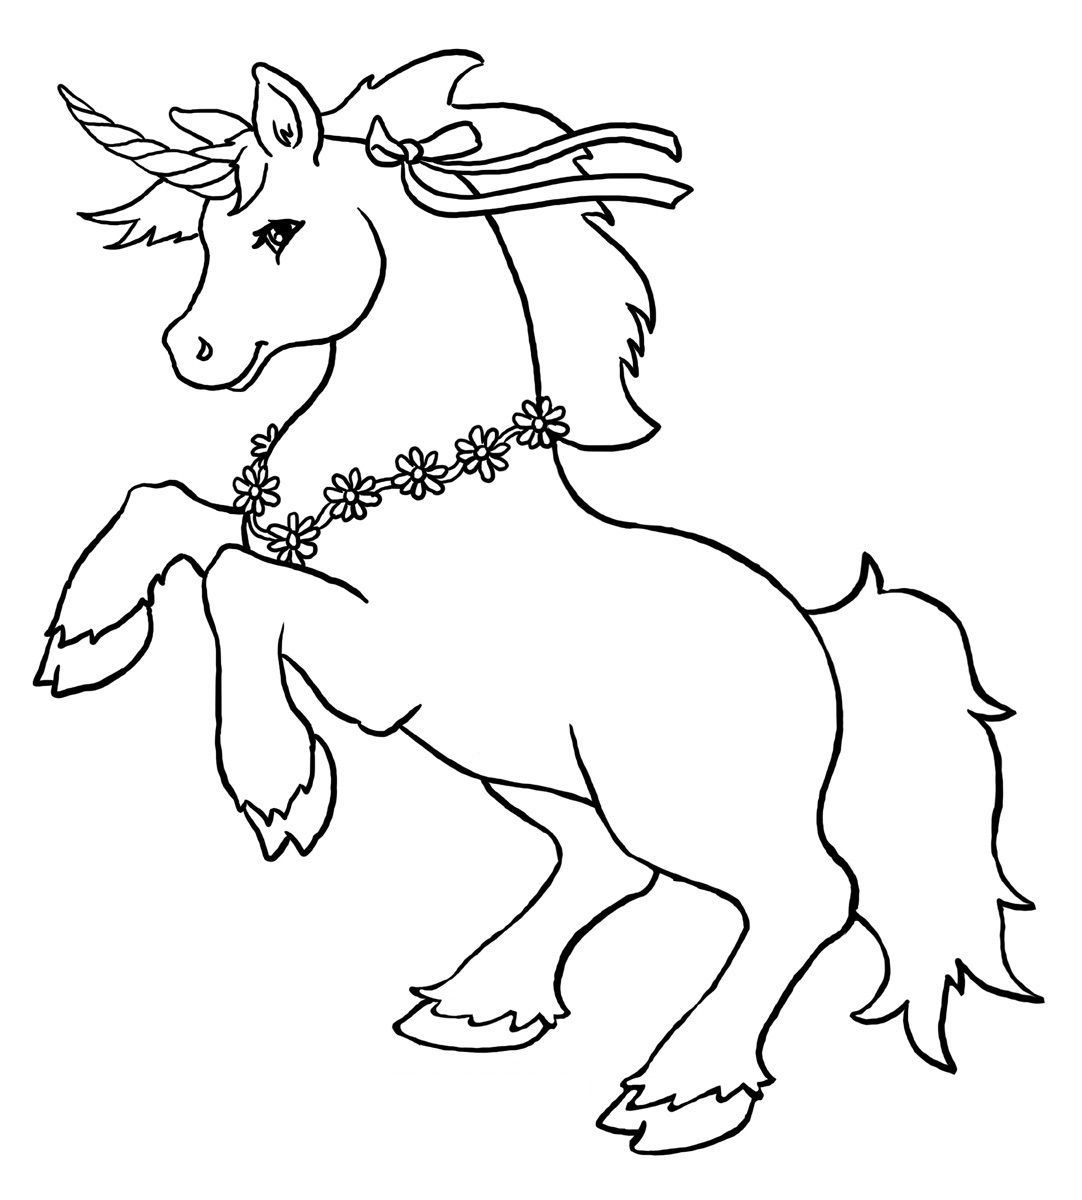 Cute Unicorn Coloring Pages | dziecko | Pinterest